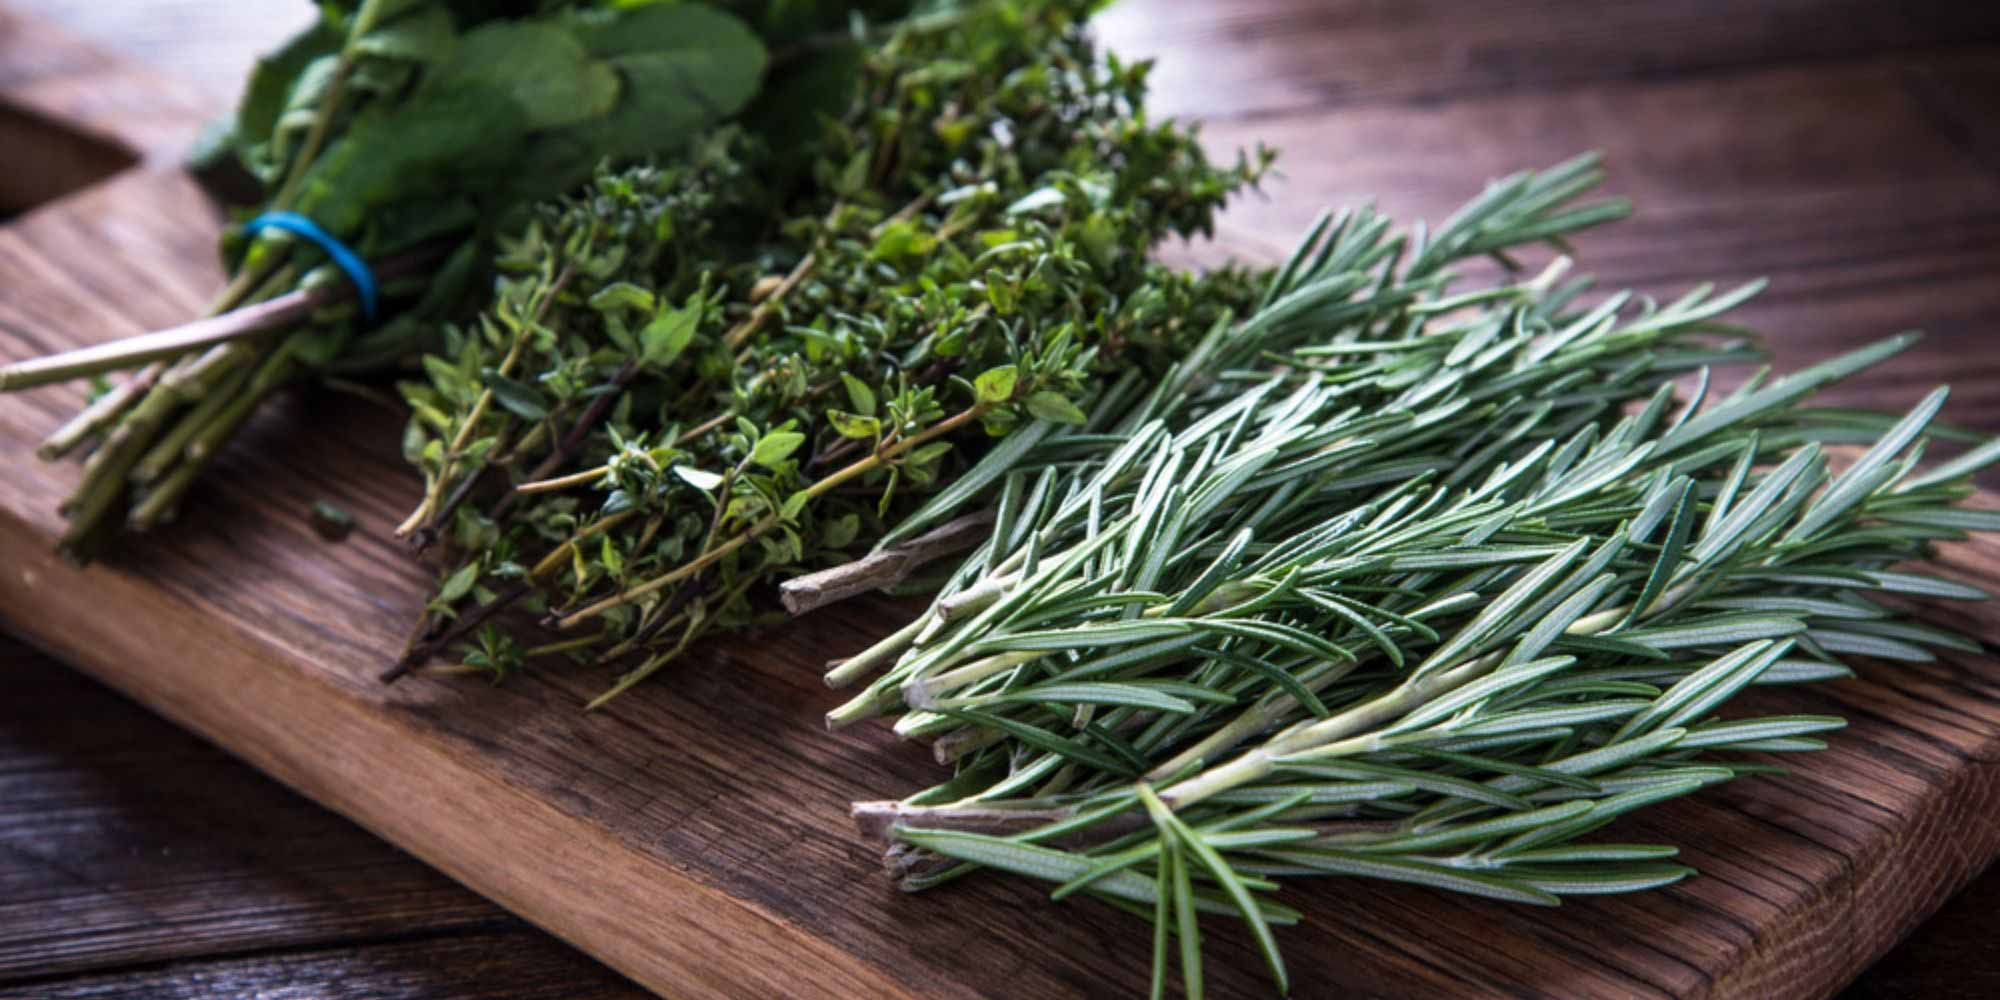 Bushels of rosemary, thyme, and basil on a wooden cutting board.